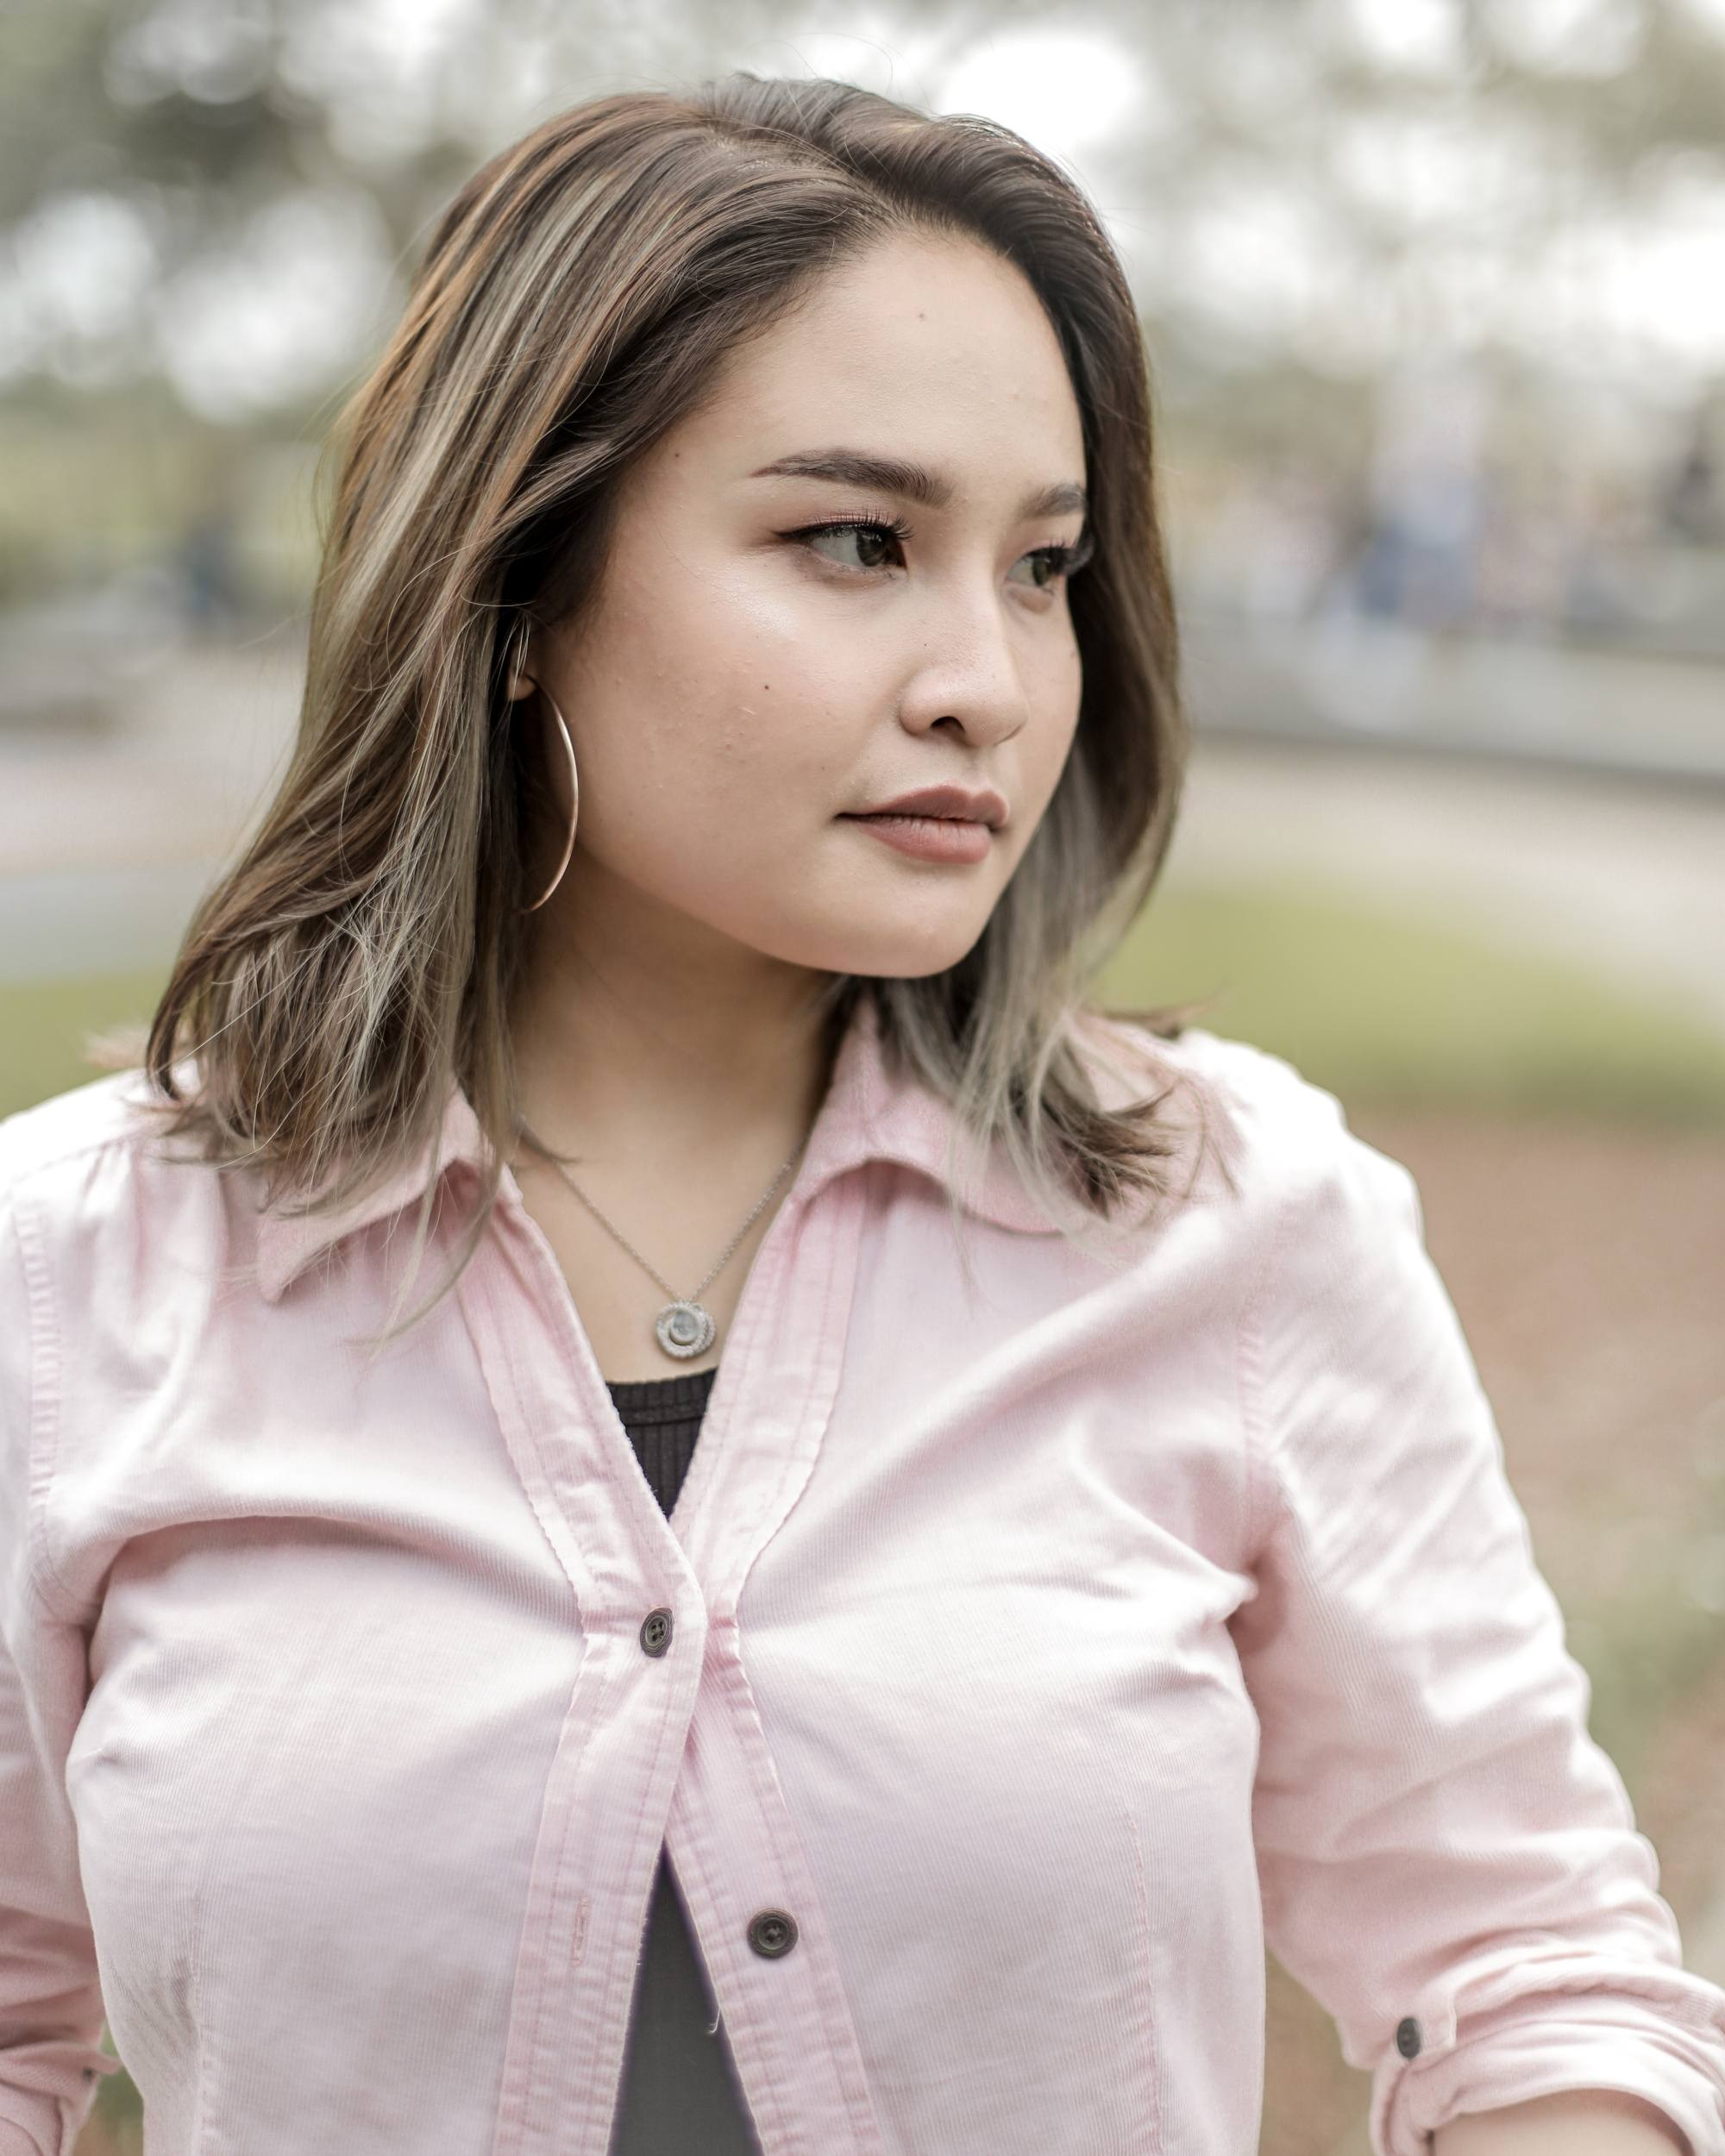 Asian woman with ash brown medium length hair wearing a pink blouse outdoors